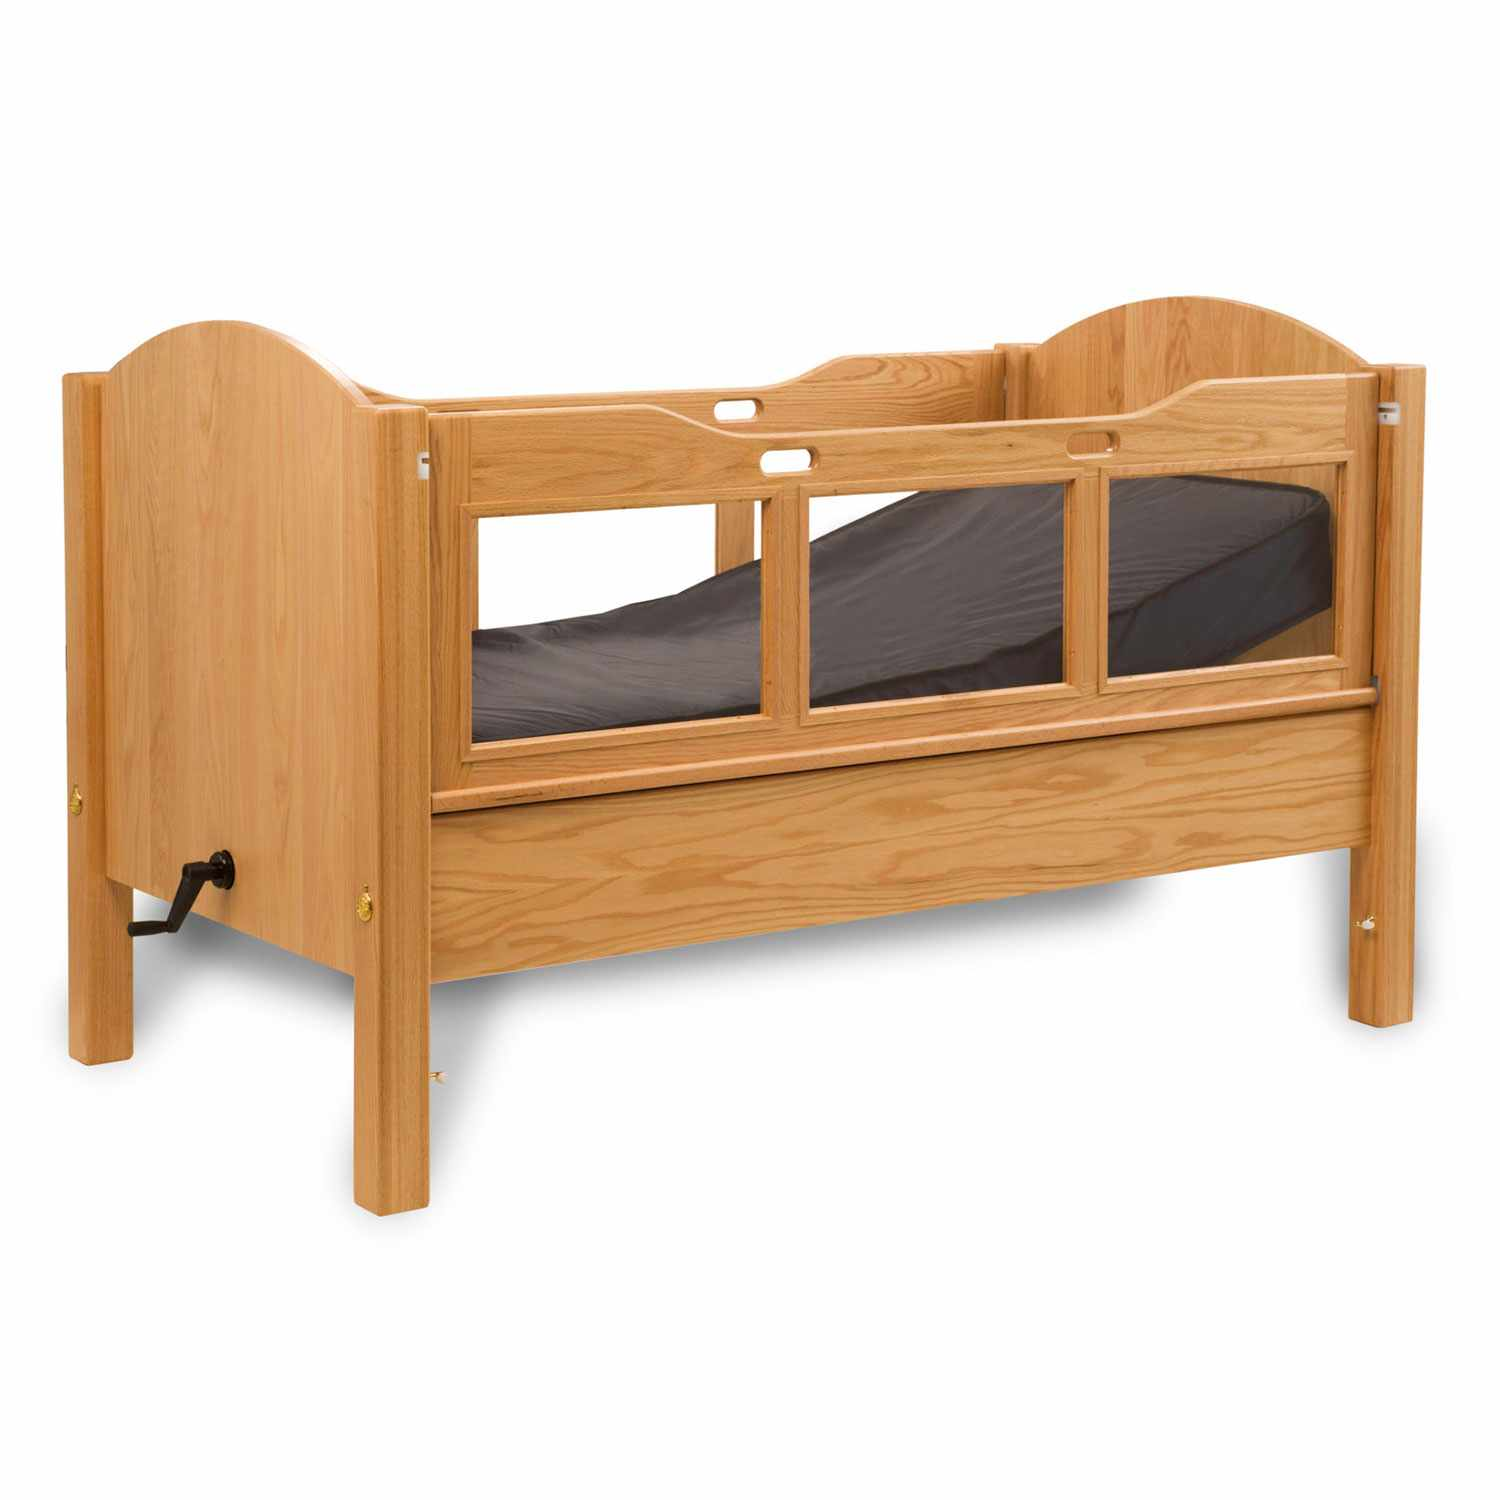 Dream series manual adjustable head, twin size bed